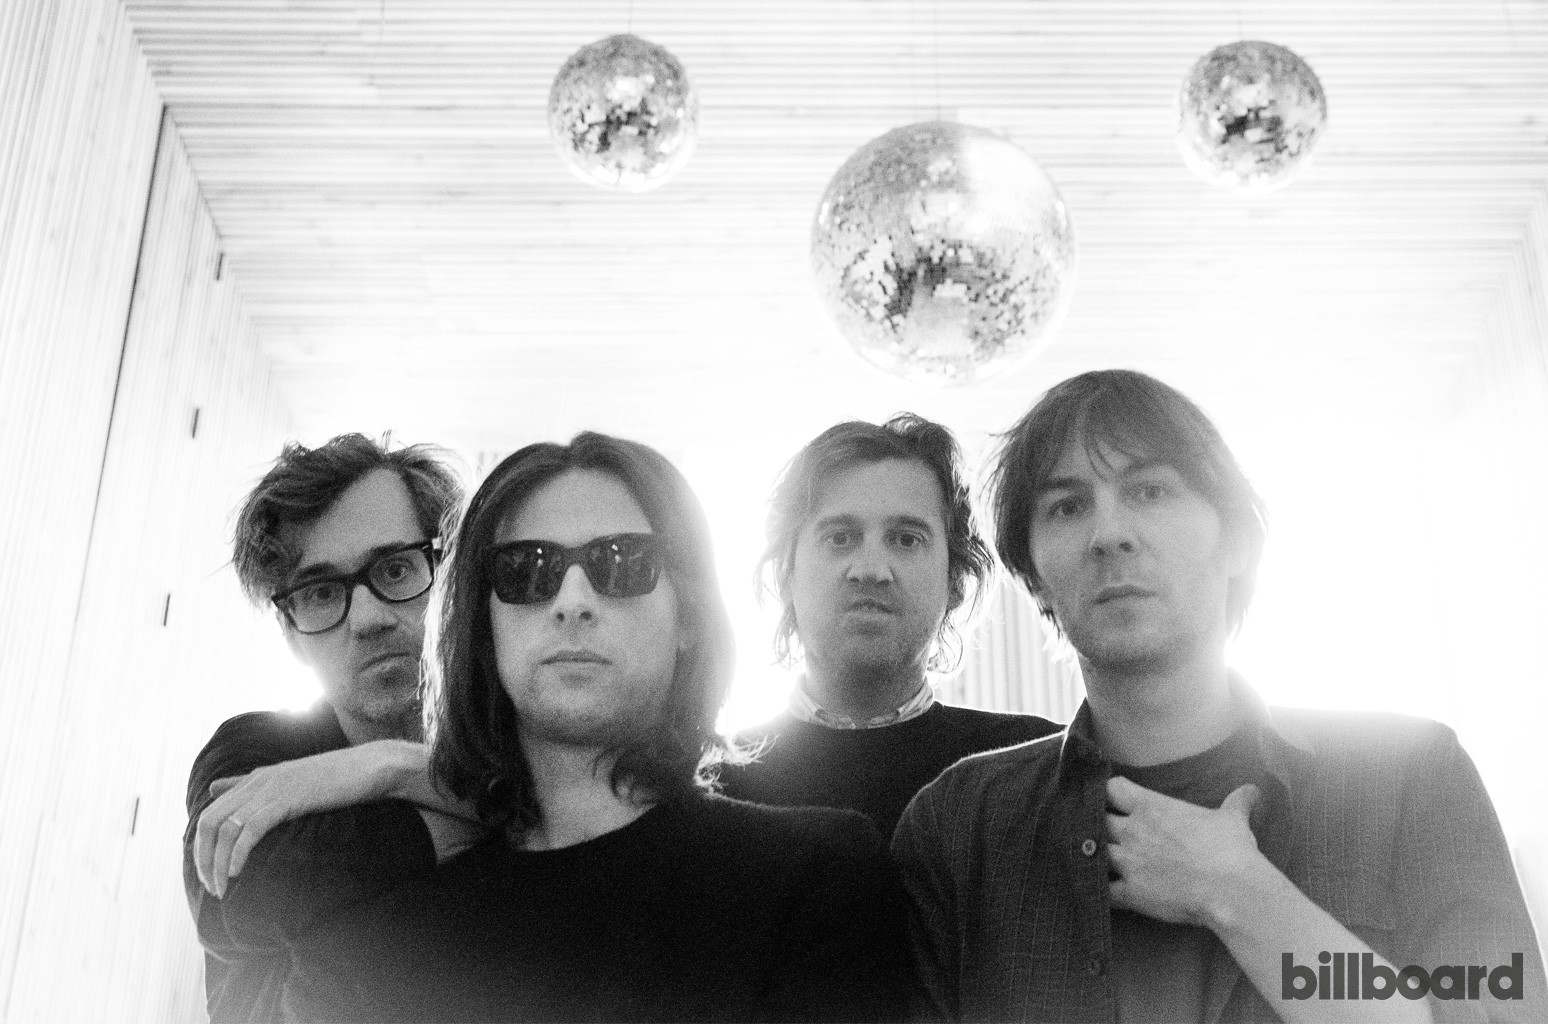 Phoenix photographed on May 3rd at The VNYL in New York City.